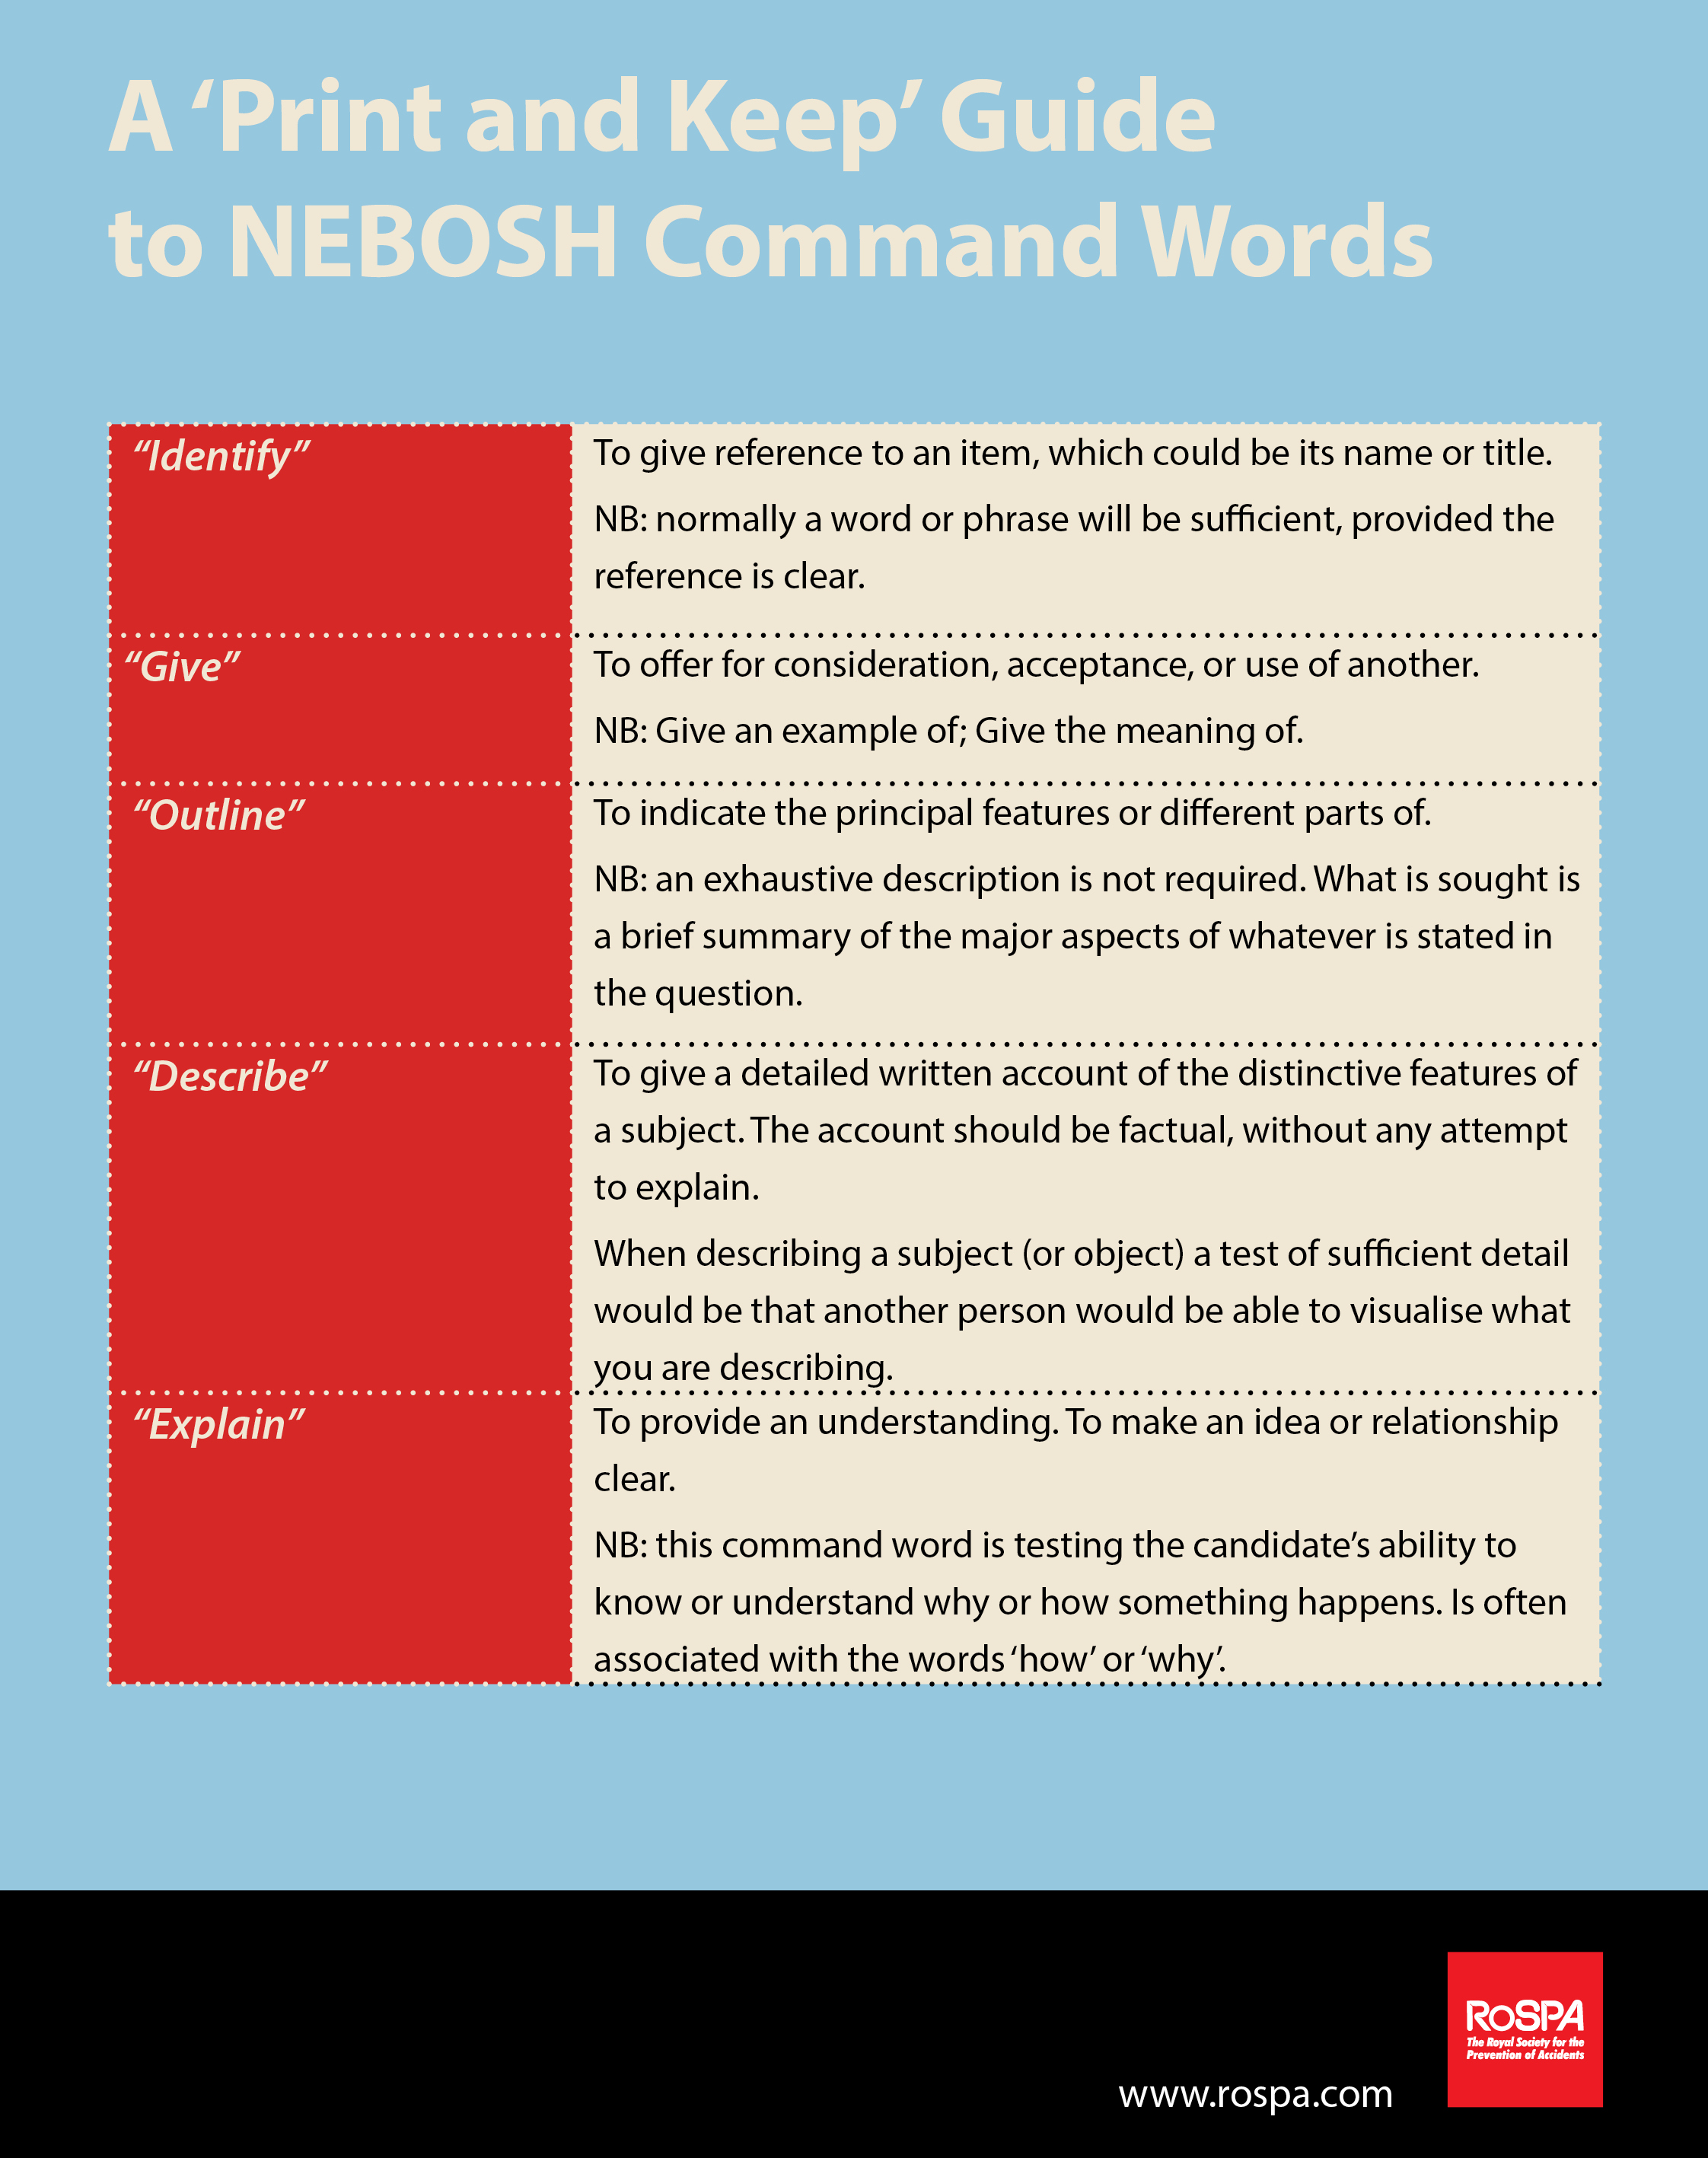 How to pass NEBOSH exams: New command word guide – RoSPA